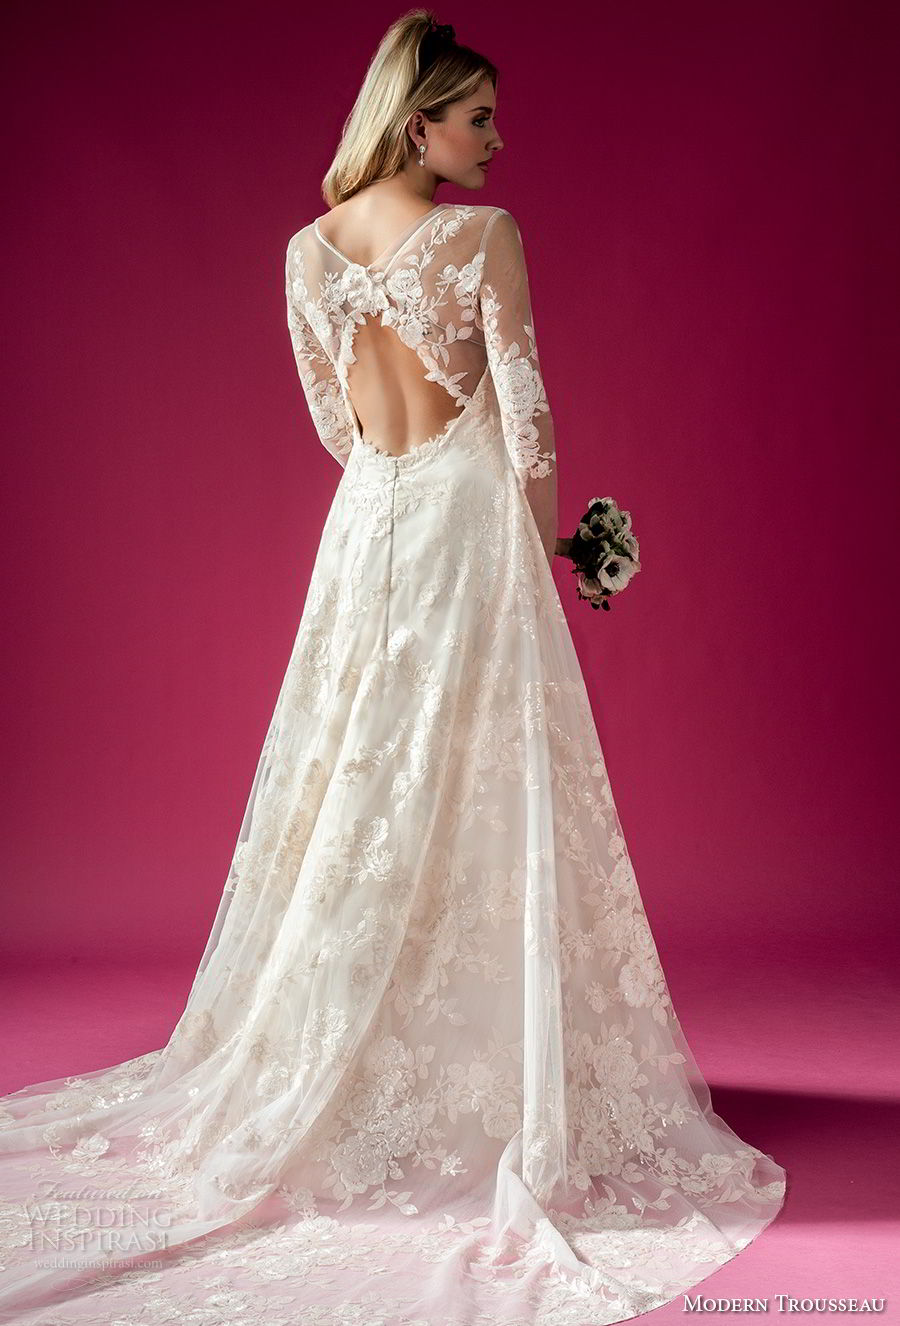 modern trousseau fall 2018 bridal long sleeves illusion bateau sweetheart neckline full embellishment elegant a line wedding dress keyhole back chapel train (wynn jacket) bv